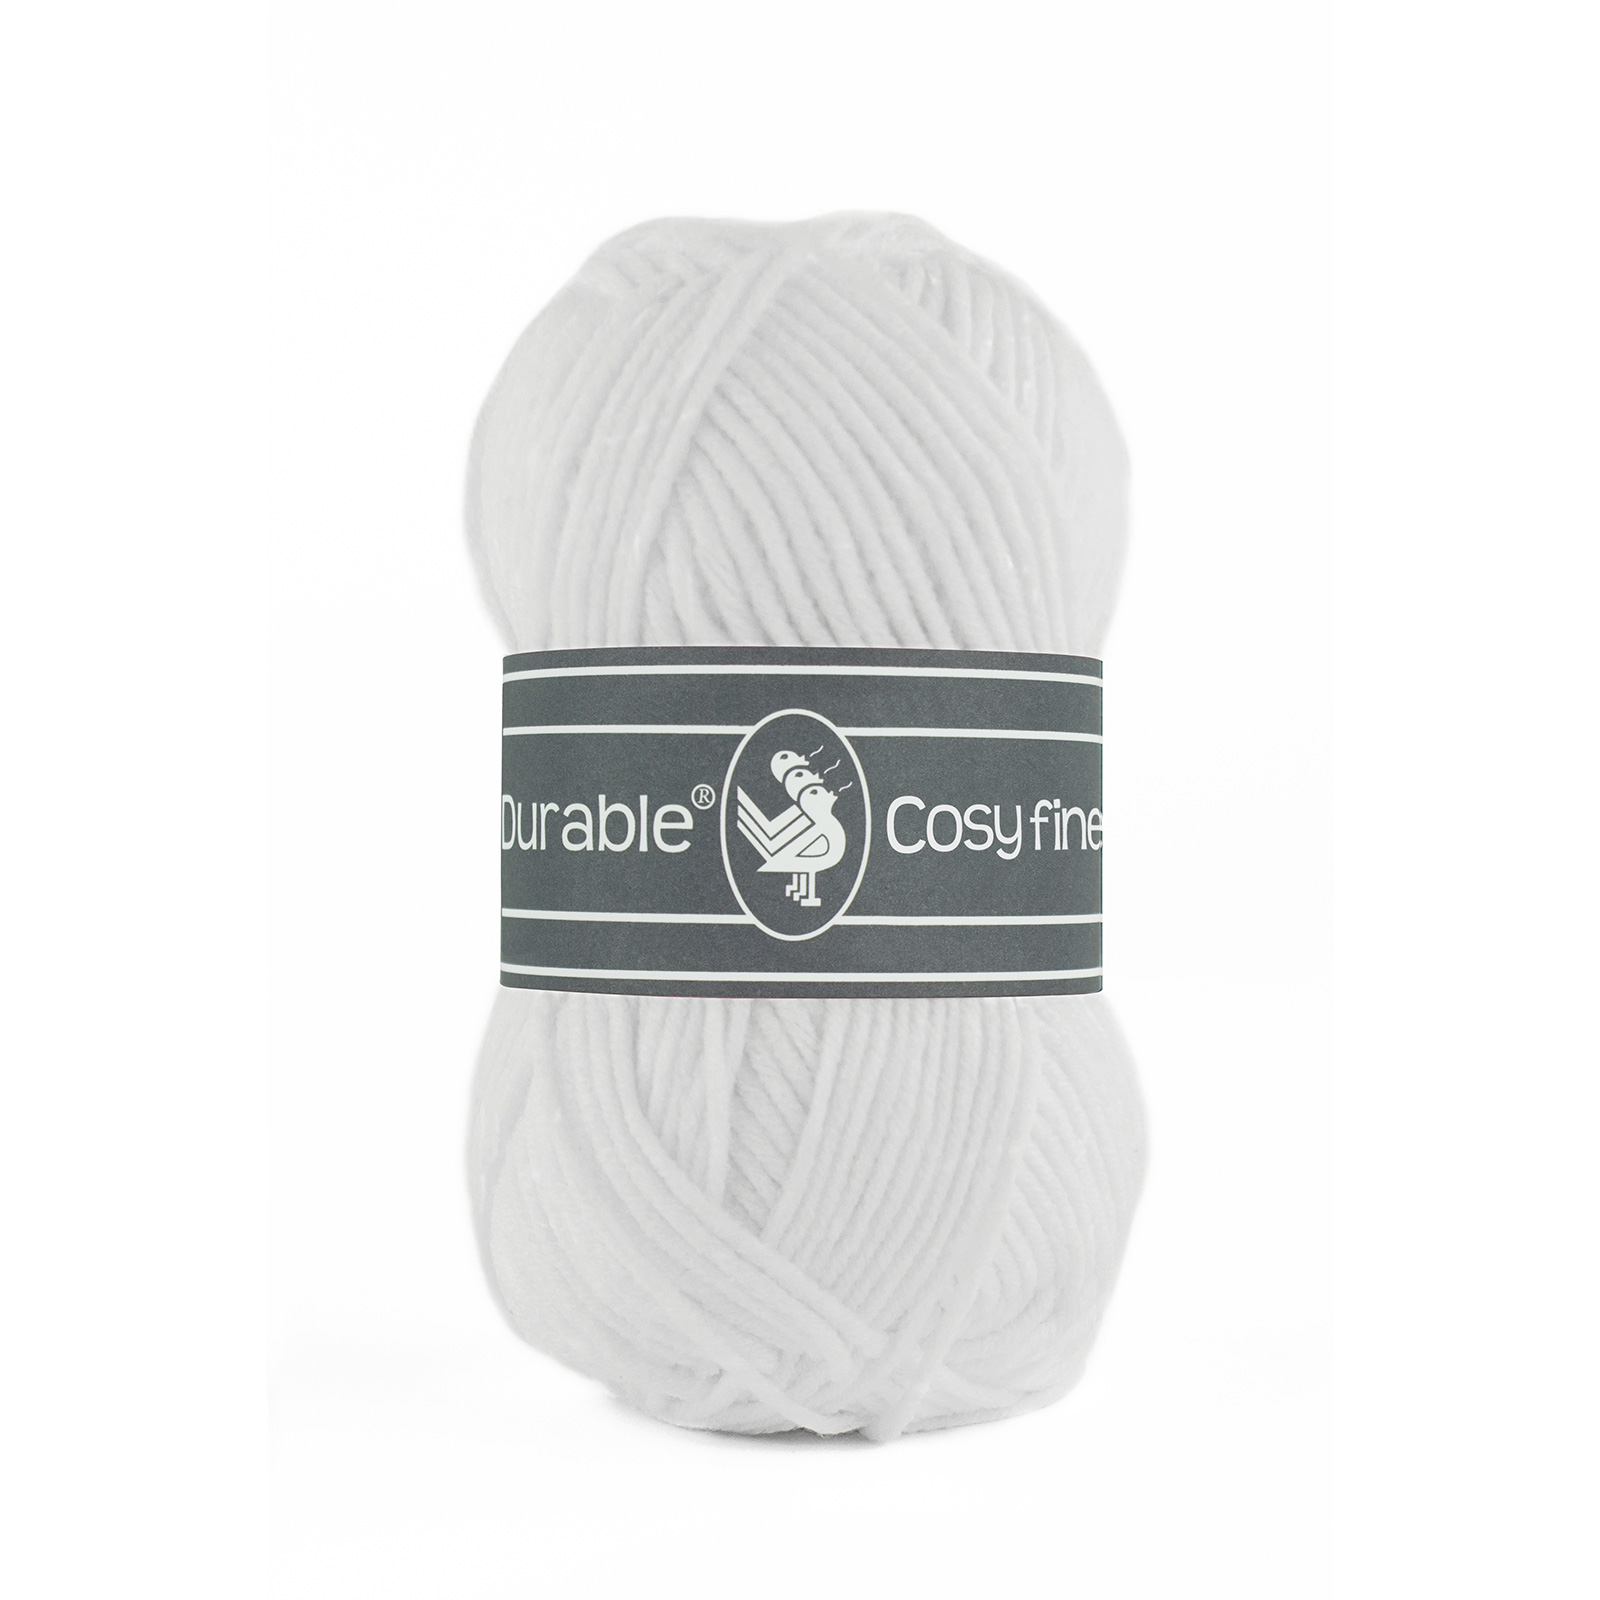 Durable Cosy fine 310 White